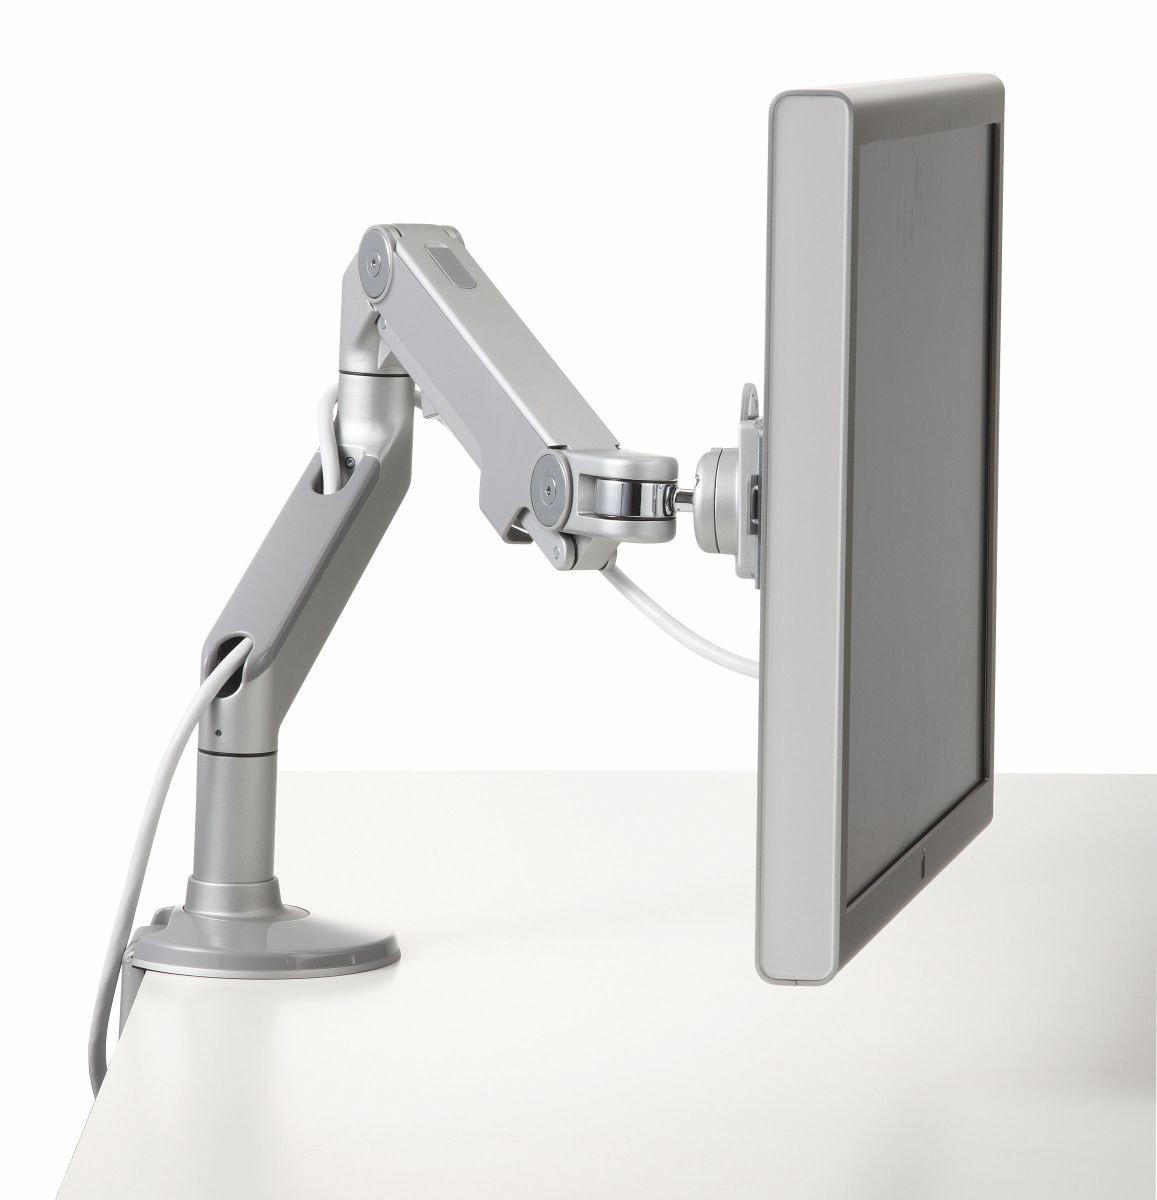 Humanscale M8 Monitor Arm Desk Mounted Modern Planet